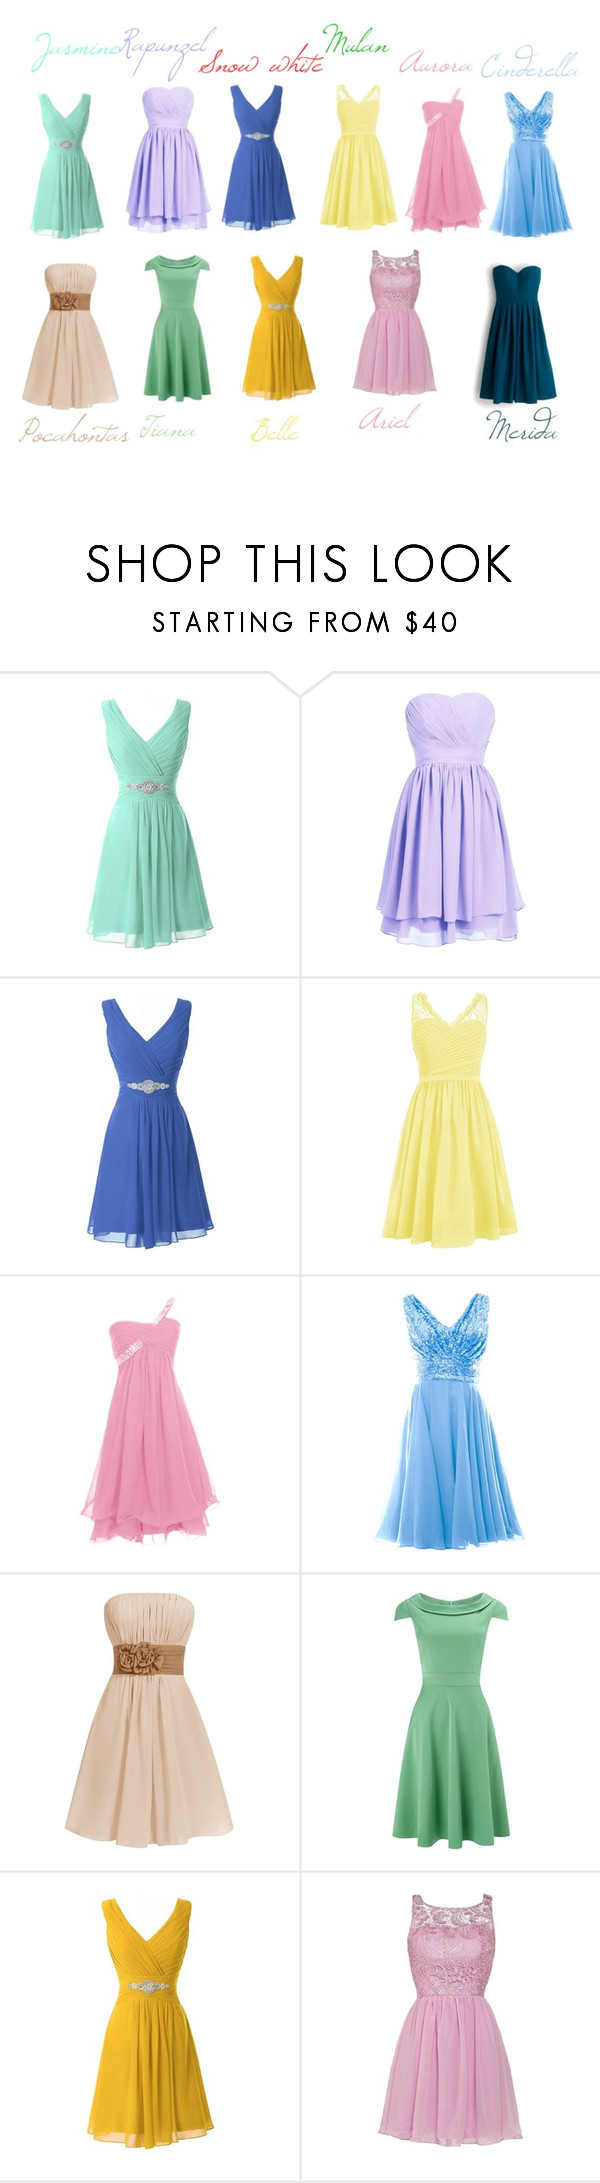 Disney princesses bridesmaid by hugo mops liked on polyvore disney princesses bridesmaid by hugo mops liked on polyvore featuring phase ombrellifo Gallery